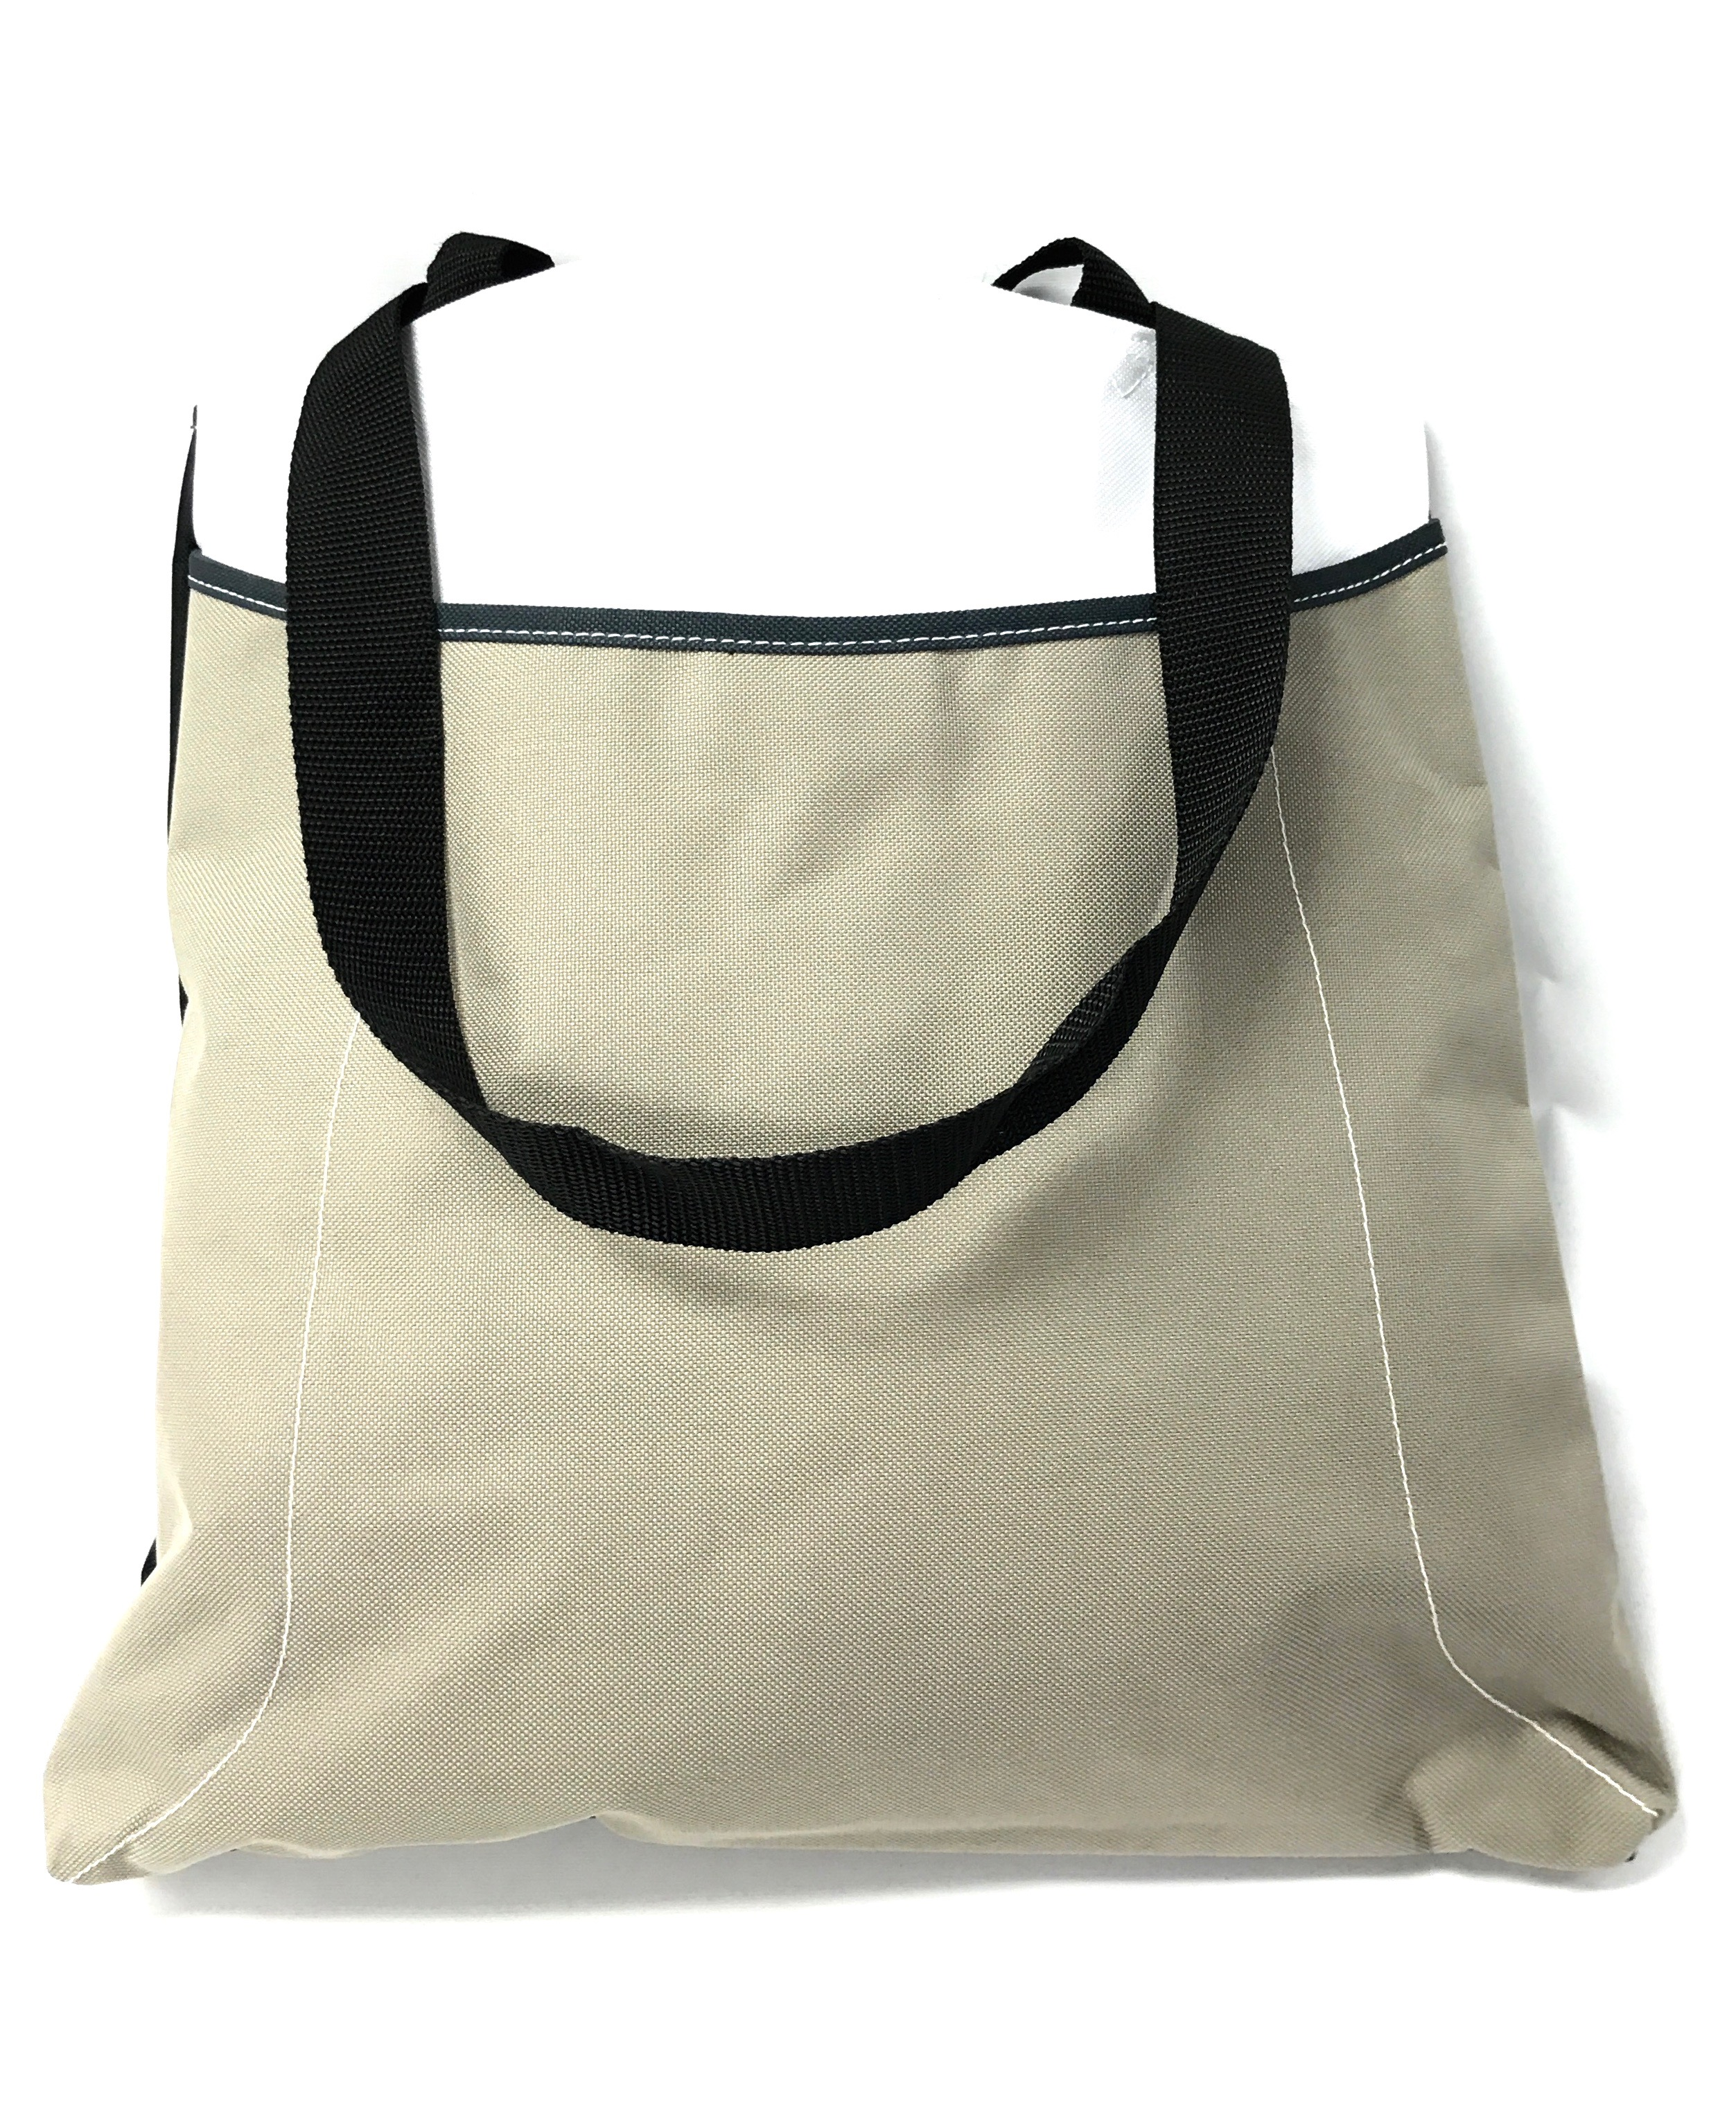 (120078) Snap It Tote - Khaki